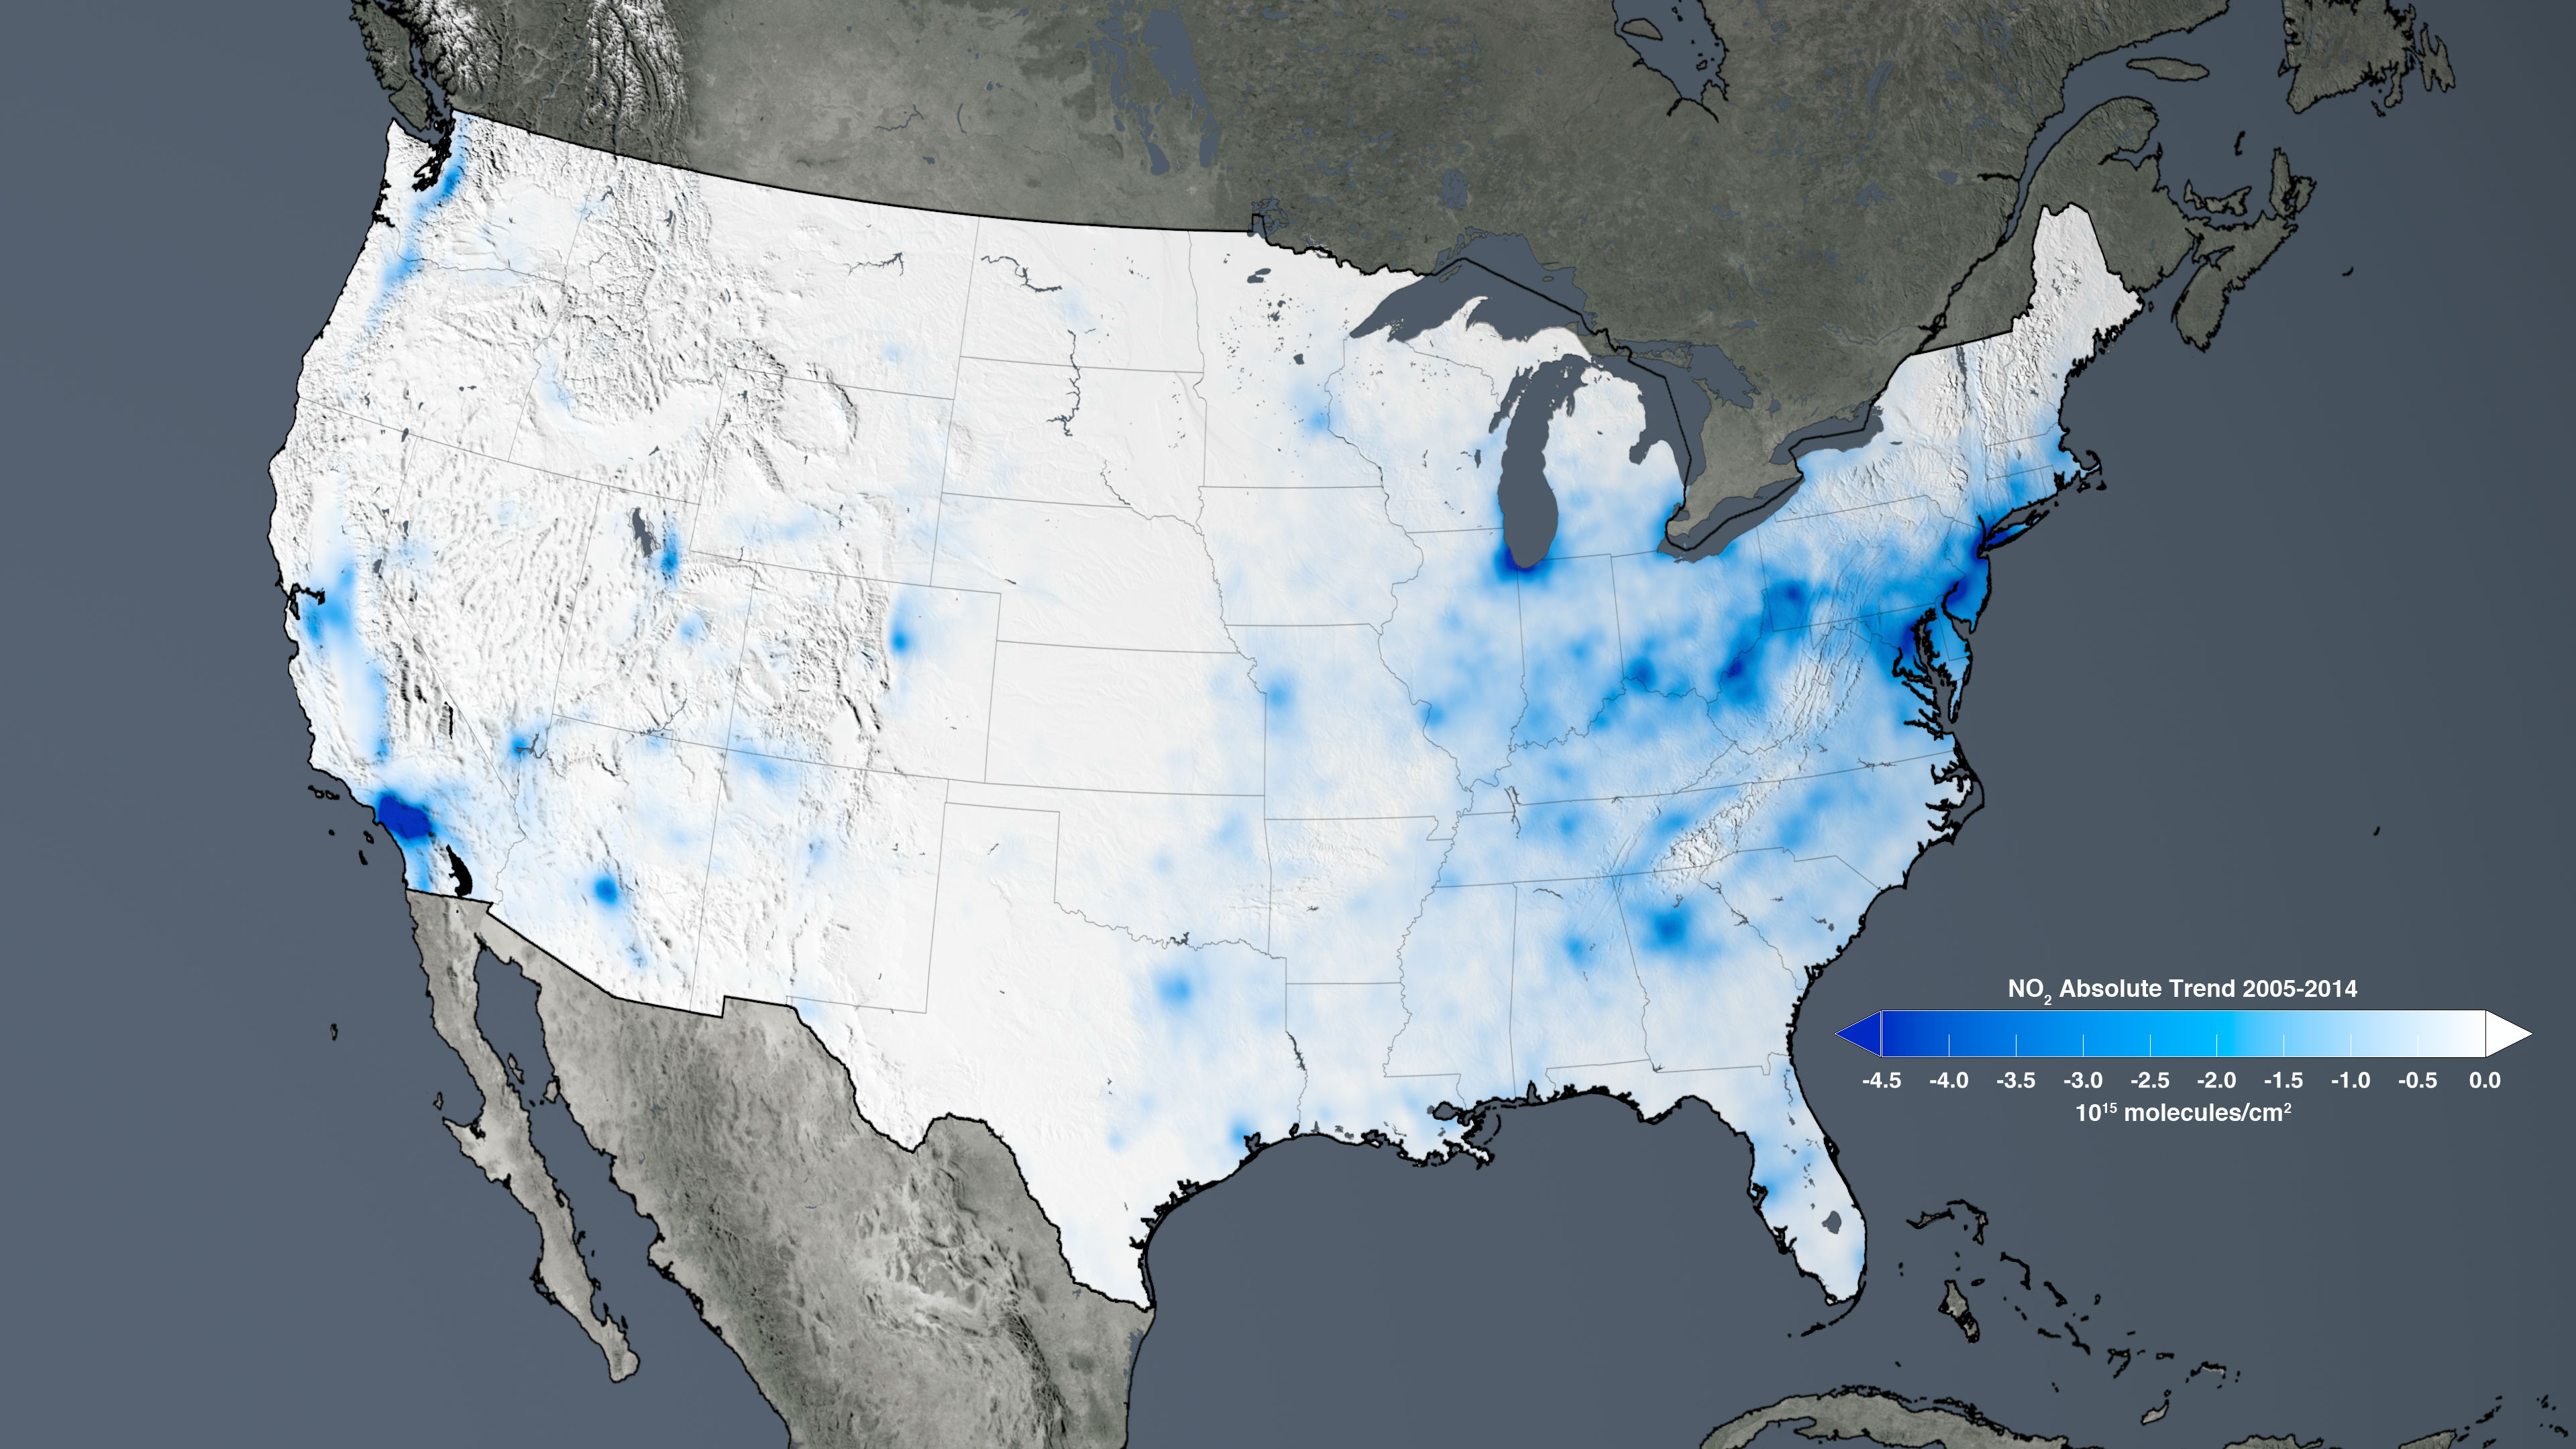 New nasa satellite maps show human fingerprint on global air quality the trend map of the united states shows the large decreases in nitrogen dioxide concentrations tied gumiabroncs Image collections